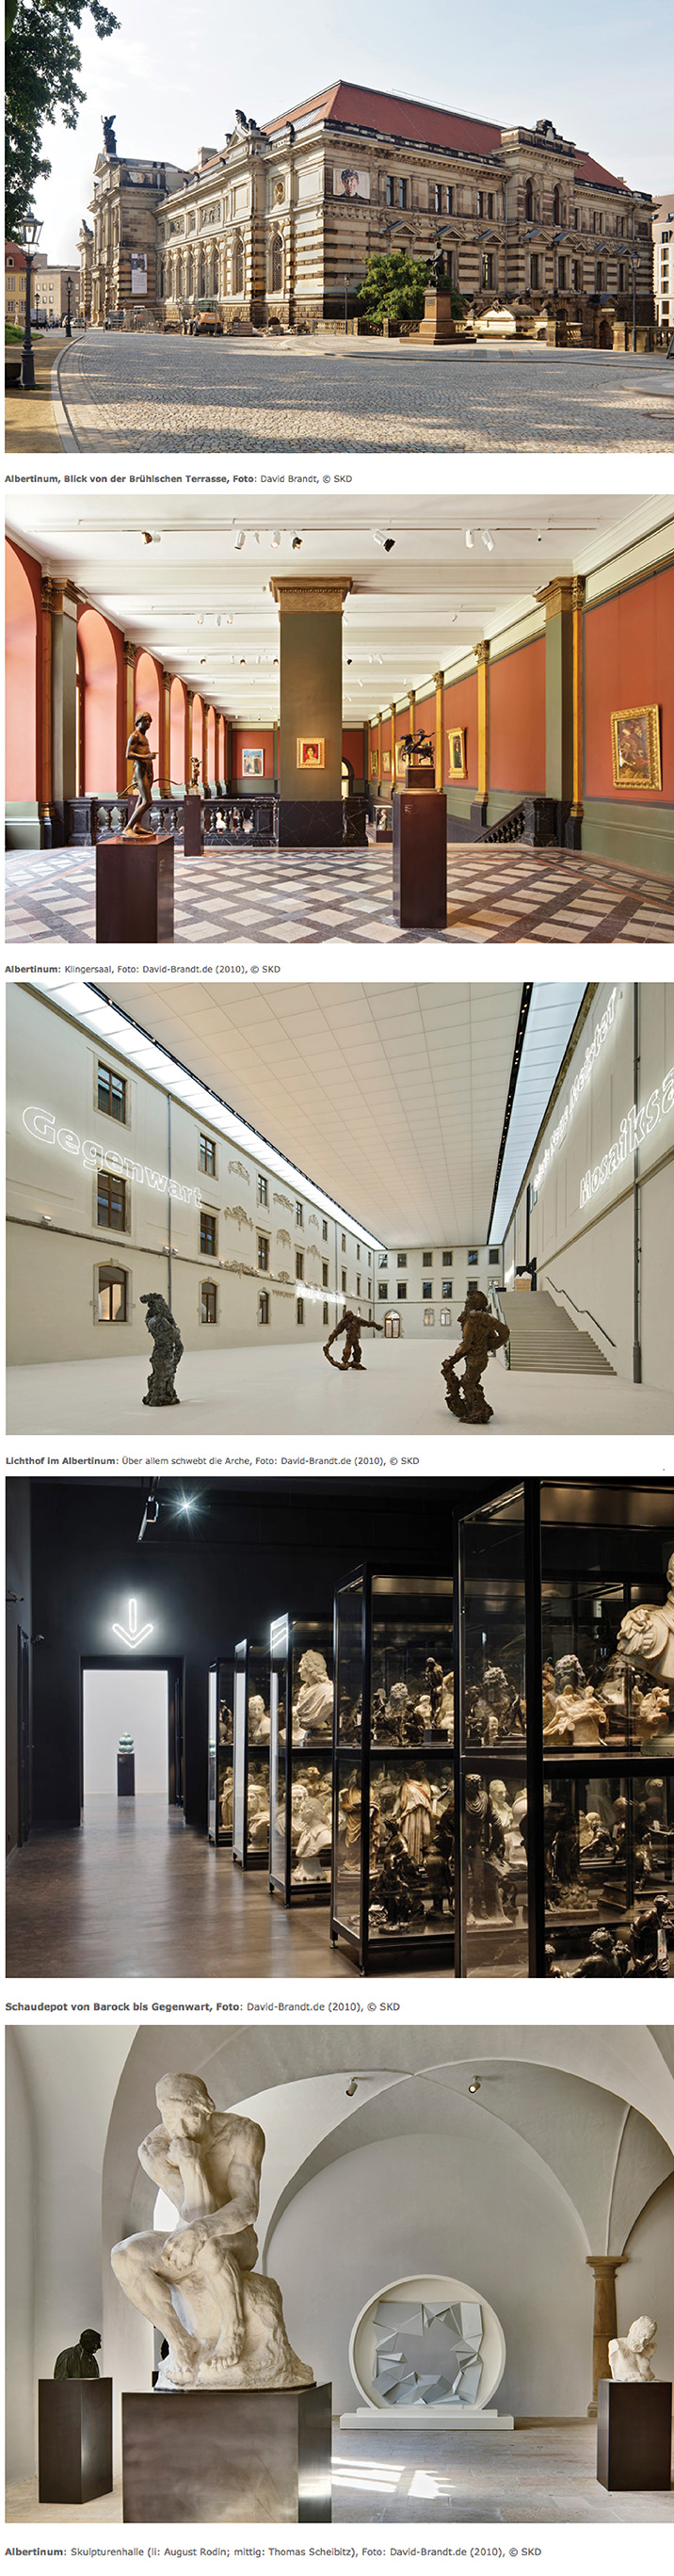 Official photos of the Albertinum Museum • Staatliche Kunstsammlung Dresden • by David Brandt